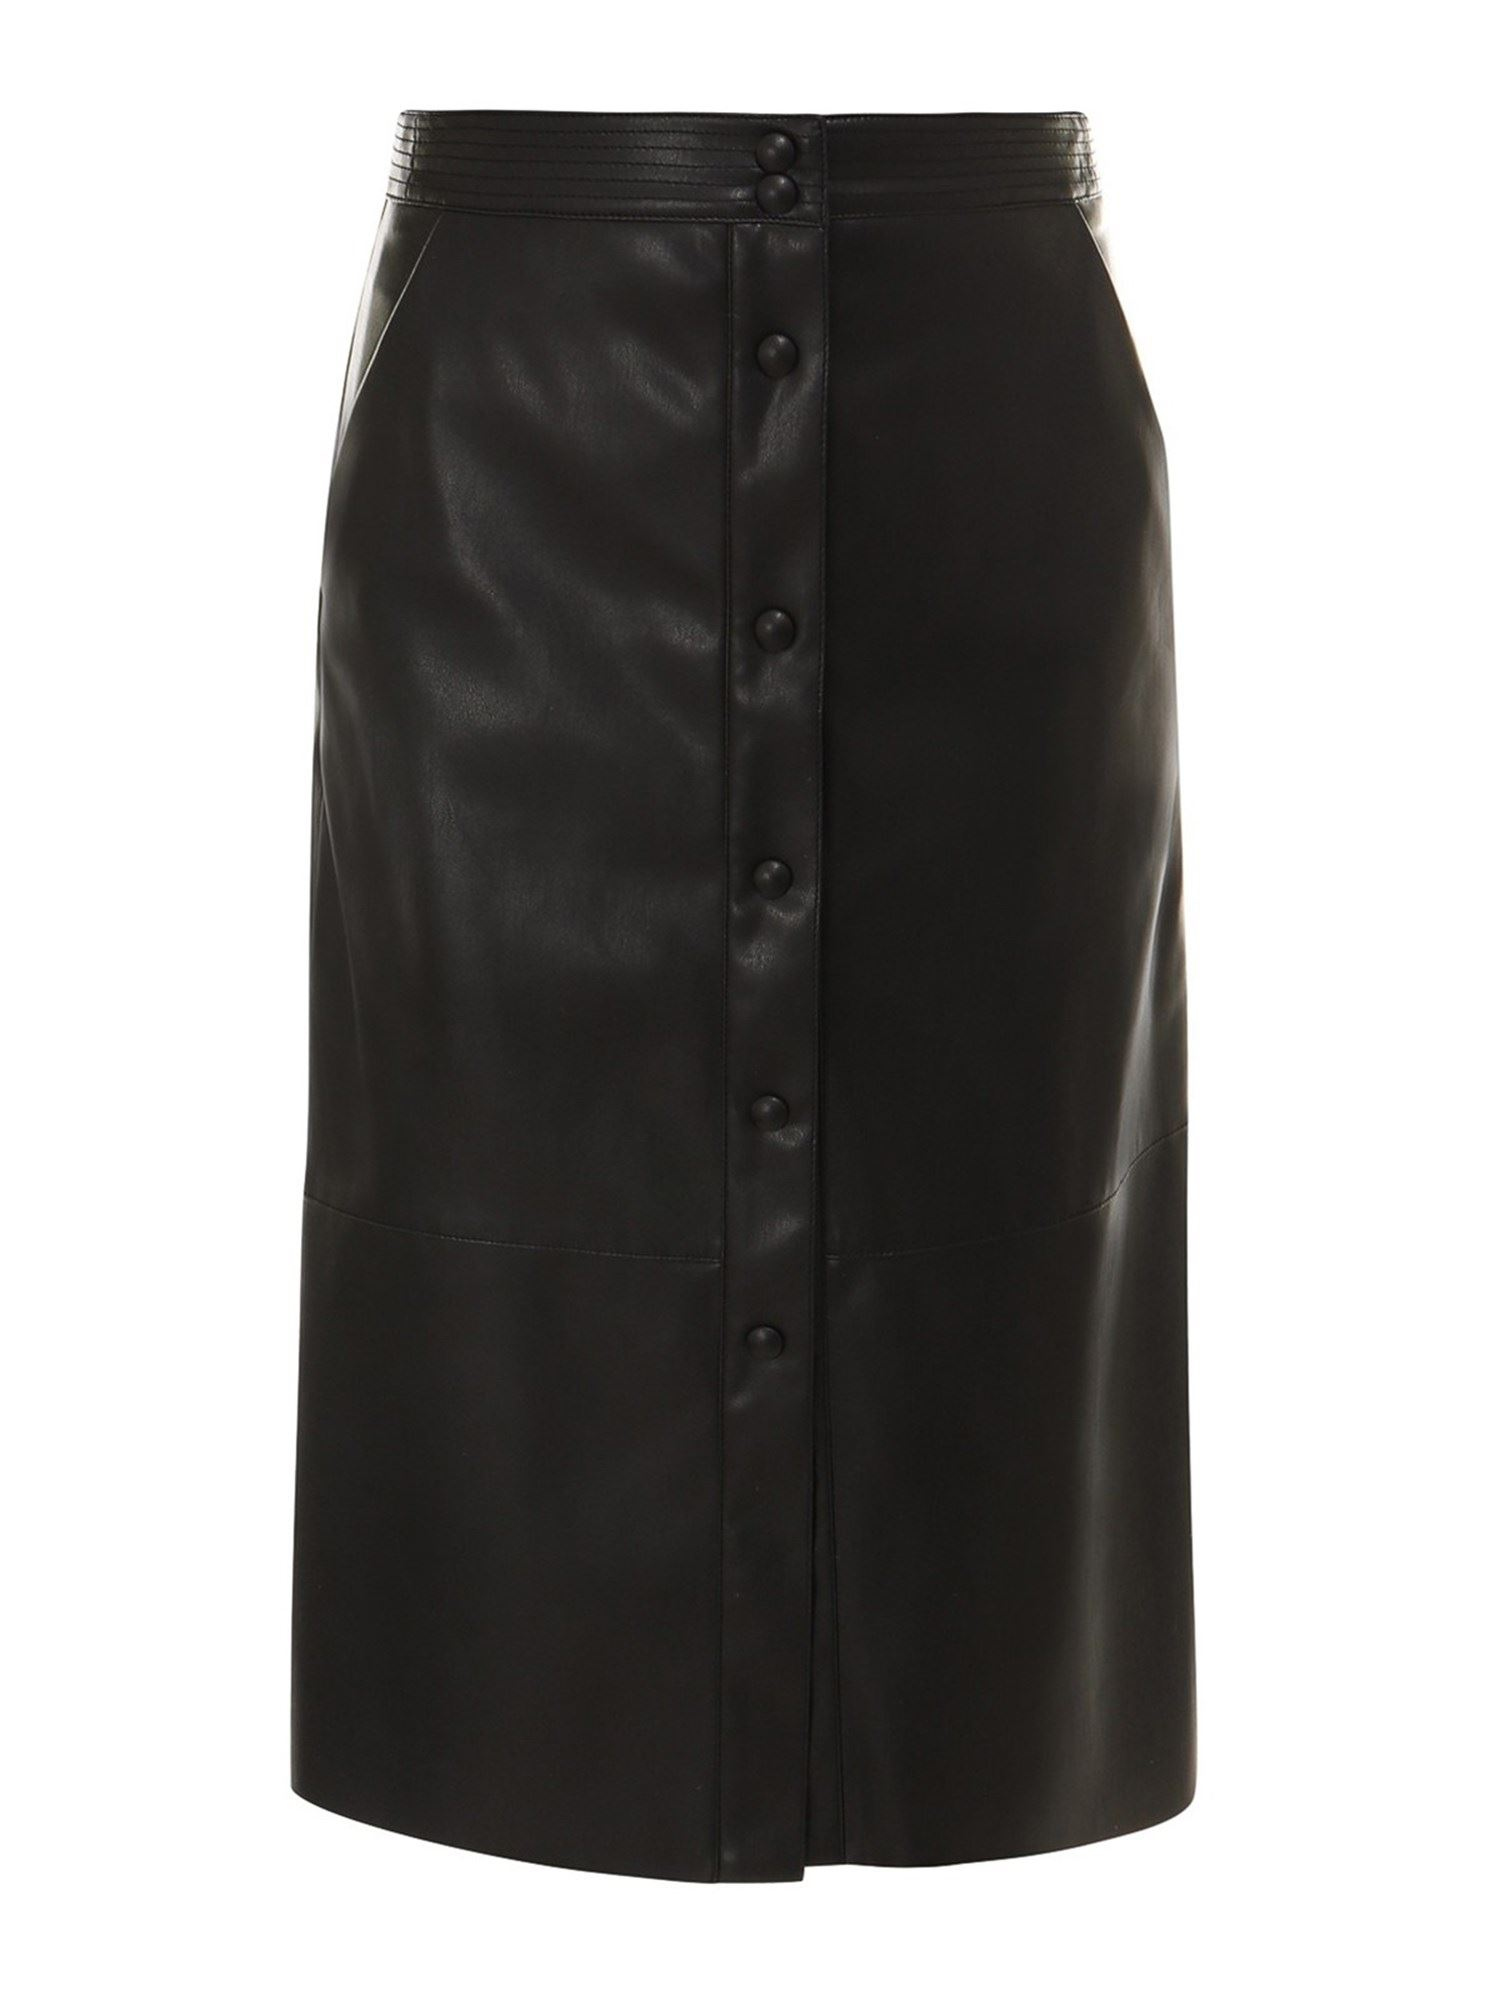 Semicouture HIGH WAISTED BLACK FAUX LEATHER SKIRT